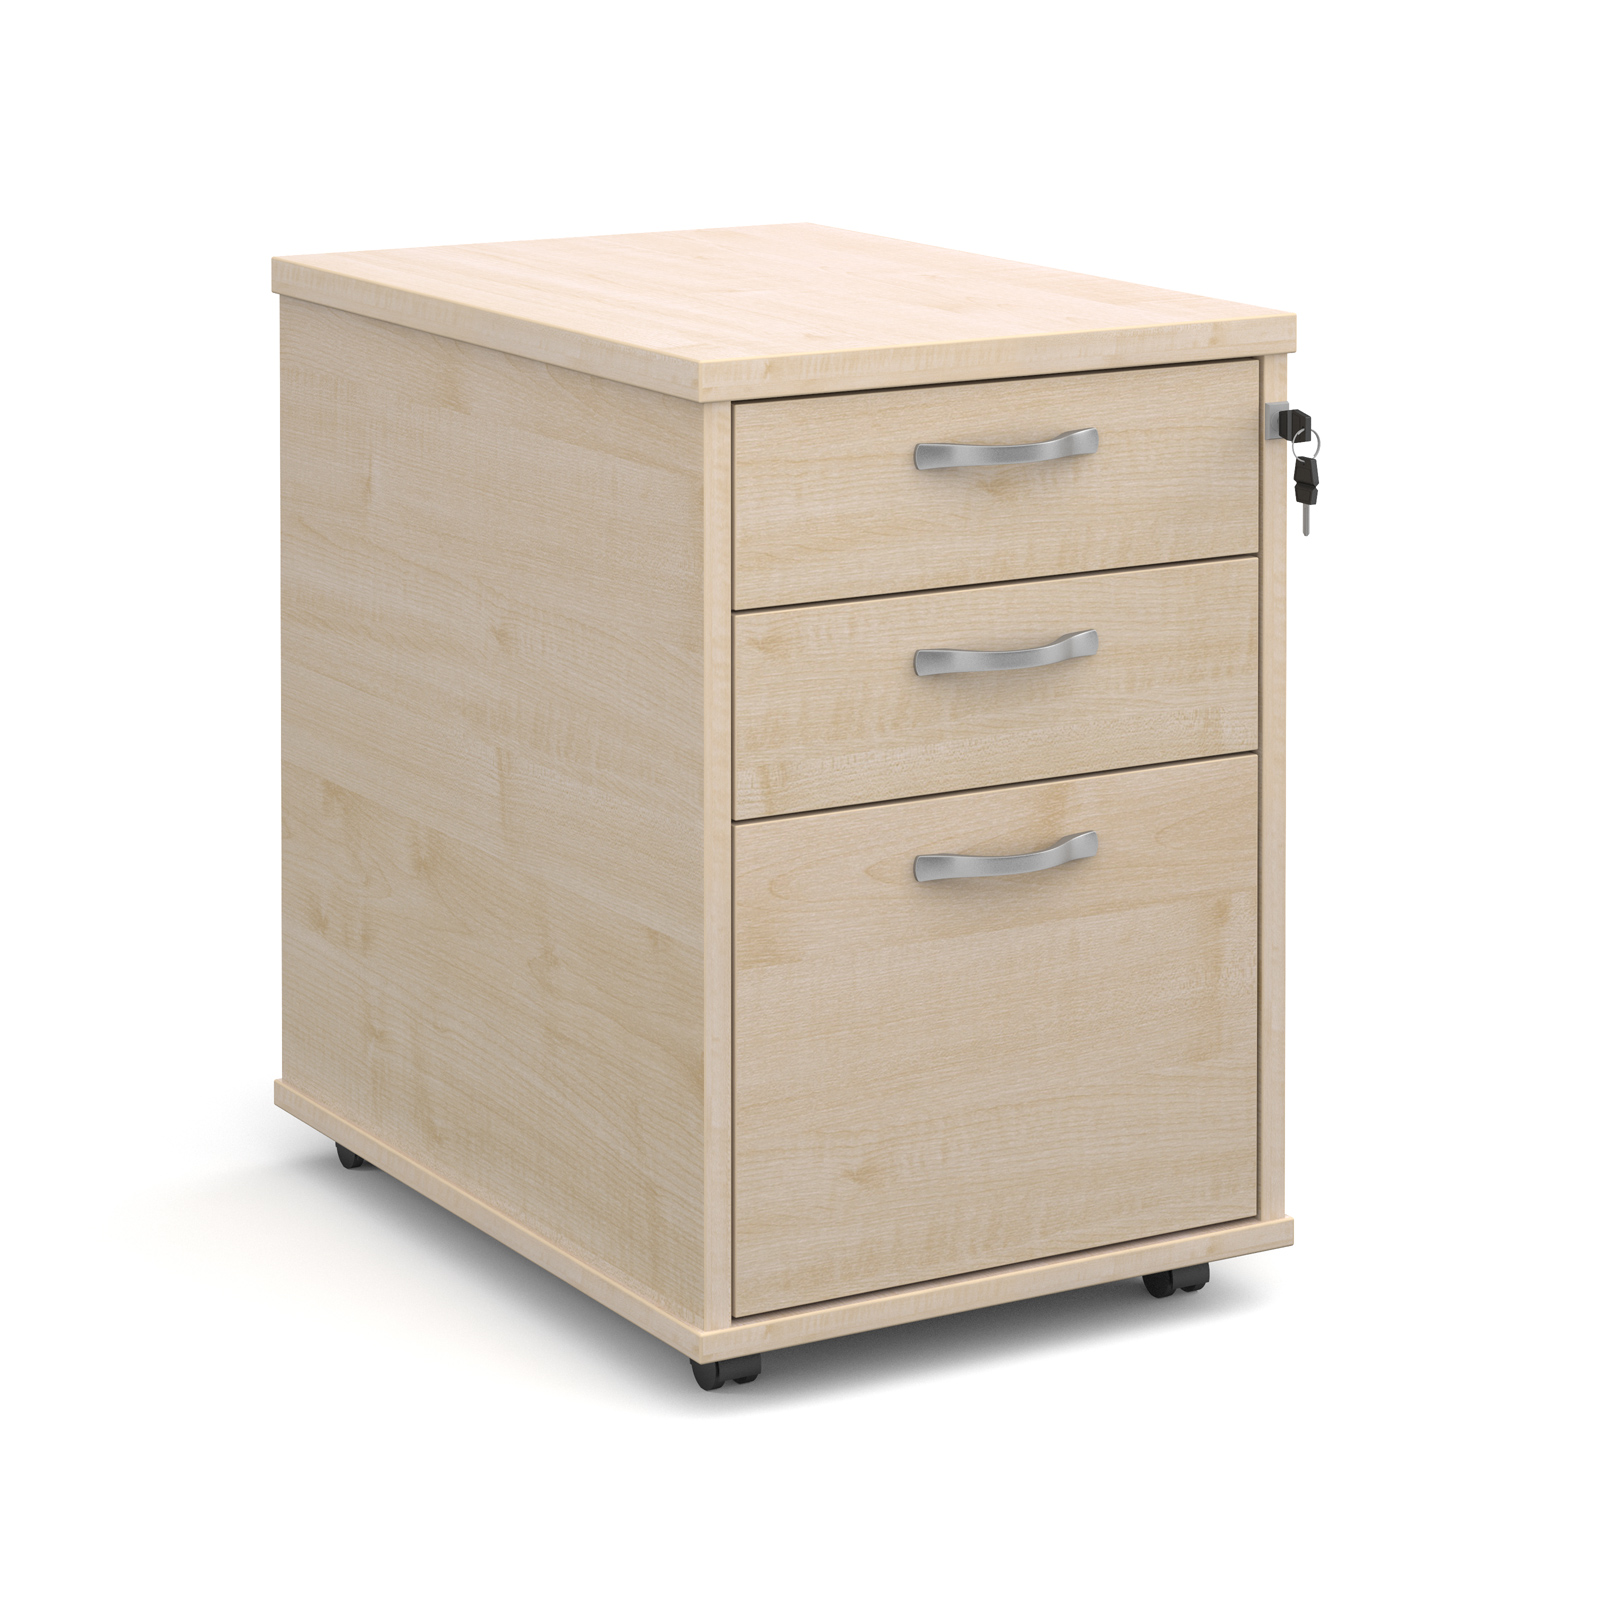 Tall mobile 3 drawer pedestal with silver handles 600mm deep - maple